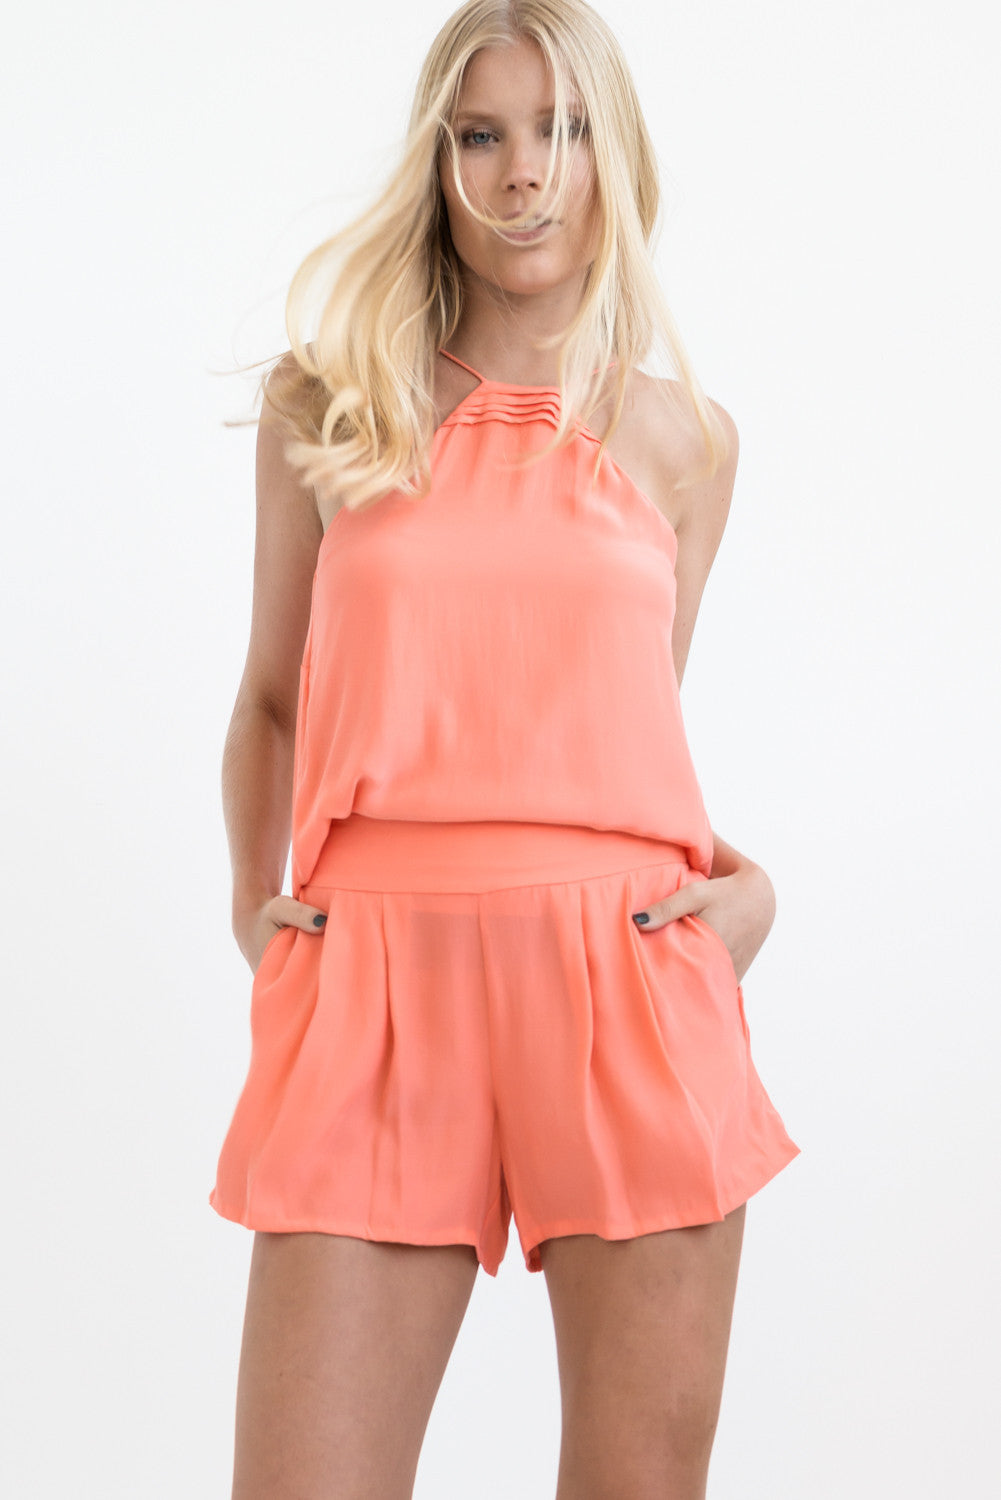 TWO PIECE SET: CORAL 2 in 1 CAMISOLE